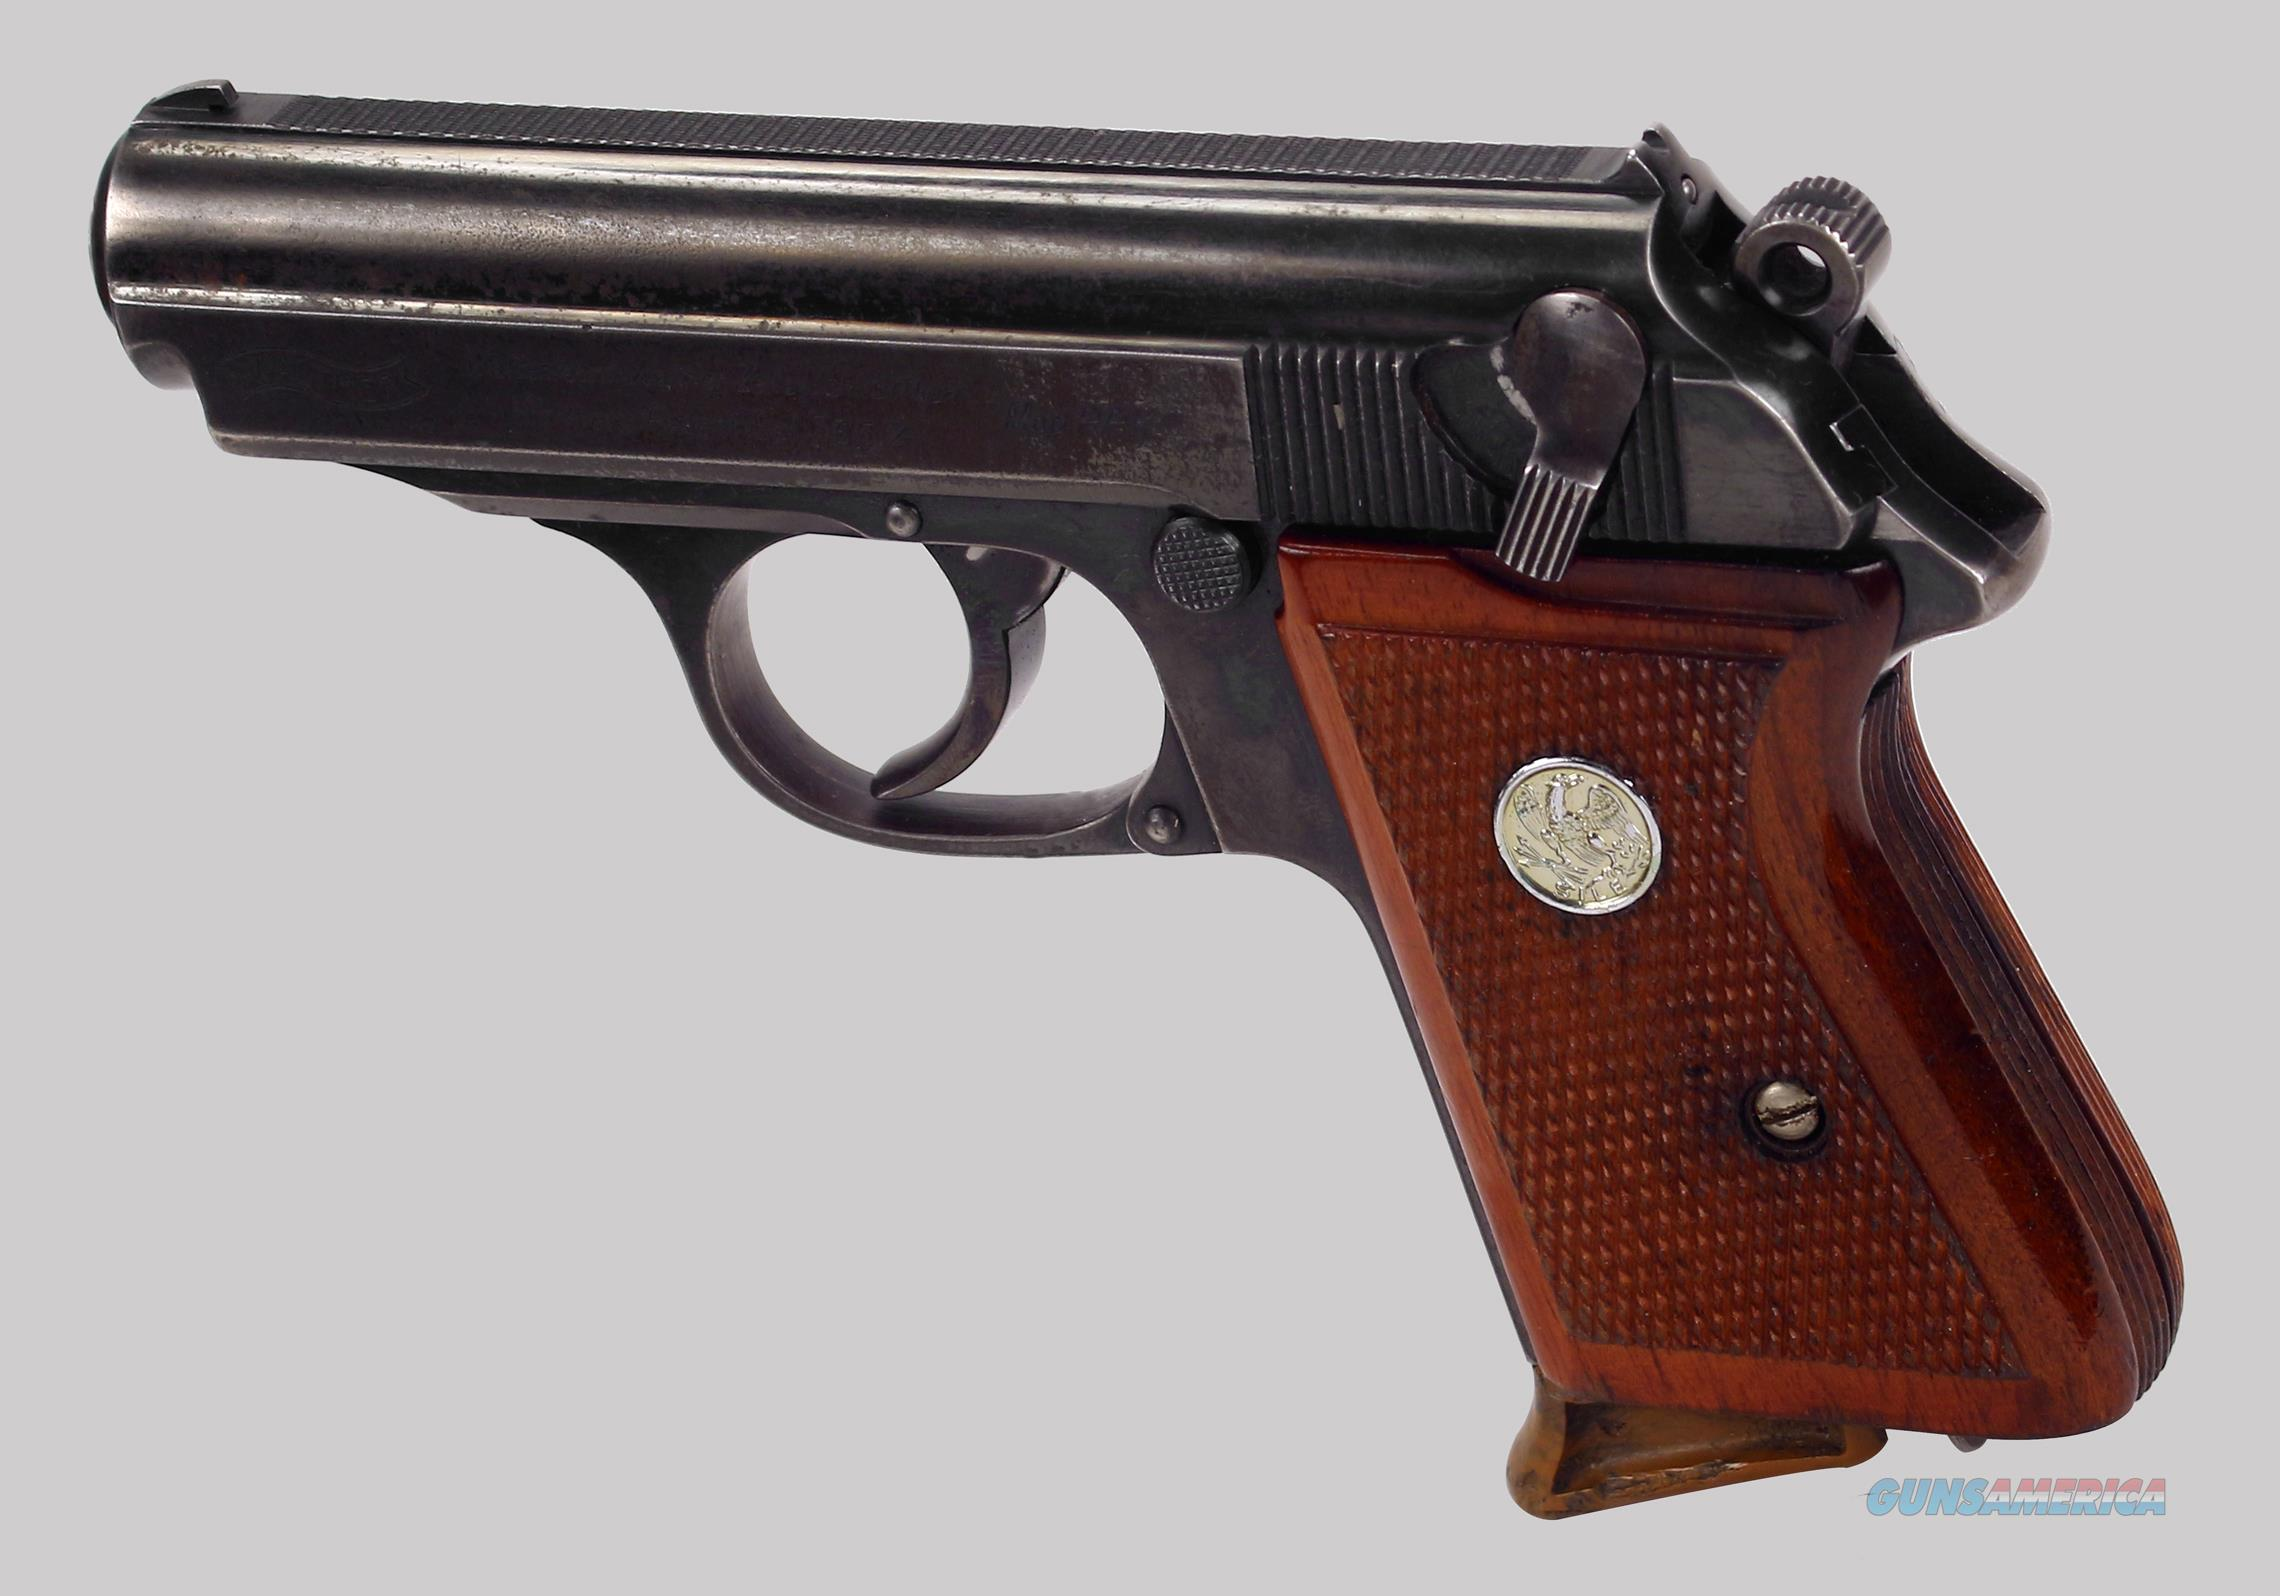 Walther PPK 32acp Pistol  Guns > Pistols > Walther Pistols > Post WWII > PPK Series